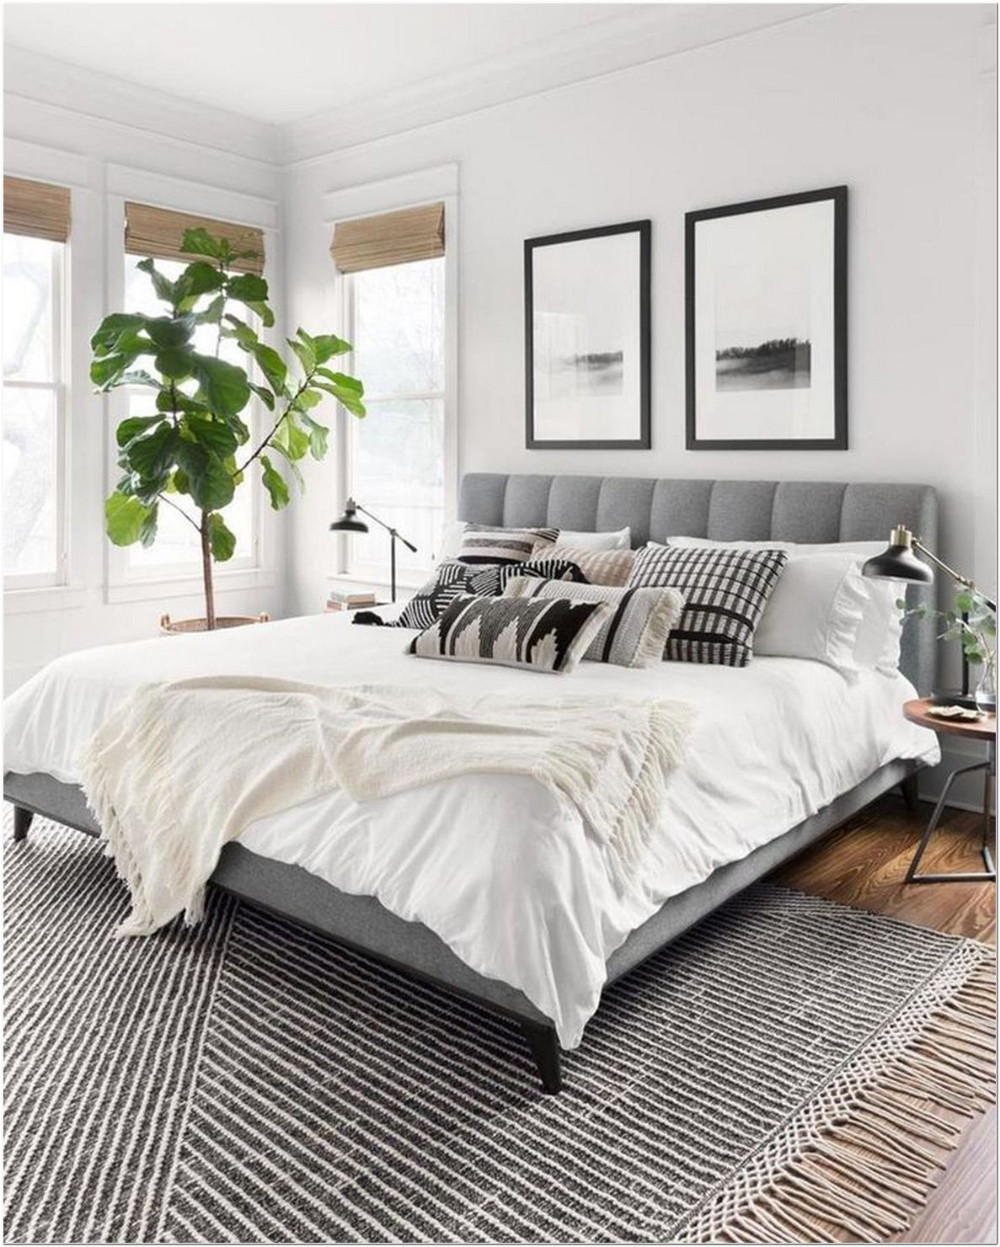 85 Modern Tiny Bedroom With Black And White Designs Ideas For Small Spaces 20 In 2020 Home Decor Bedroom Modern Master Bedroom Master Bedrooms Decor